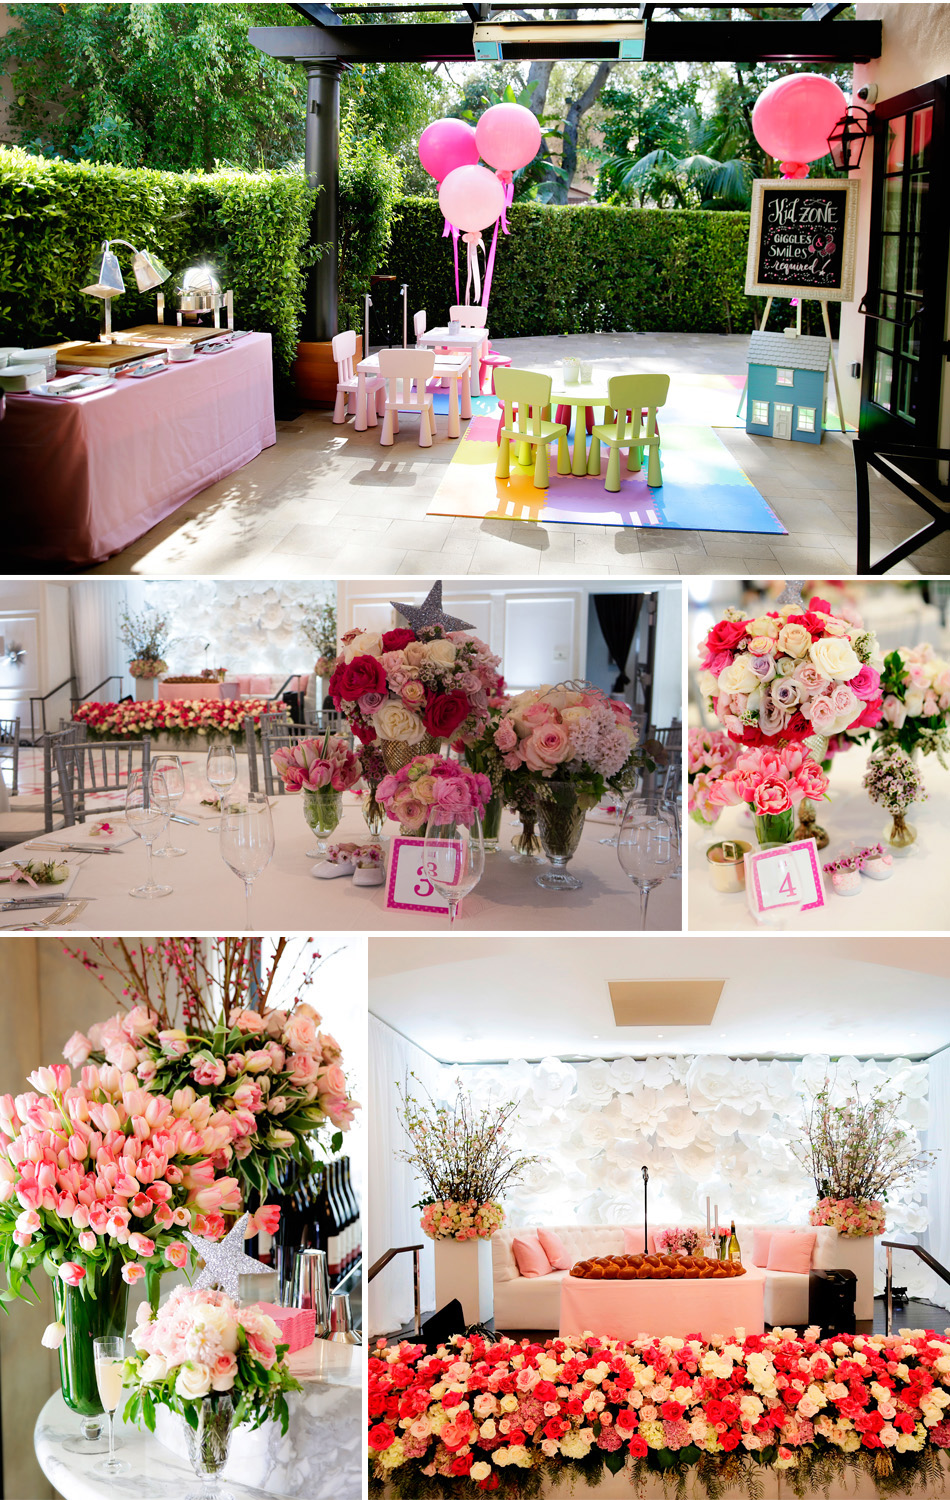 internationaleventcompany.com | International Event Company Los Angeles Wedding Planner and Designer | Birthday Parties at Hotel Bel Air | Luxury Event Planners in Southern California _ (1).jpg